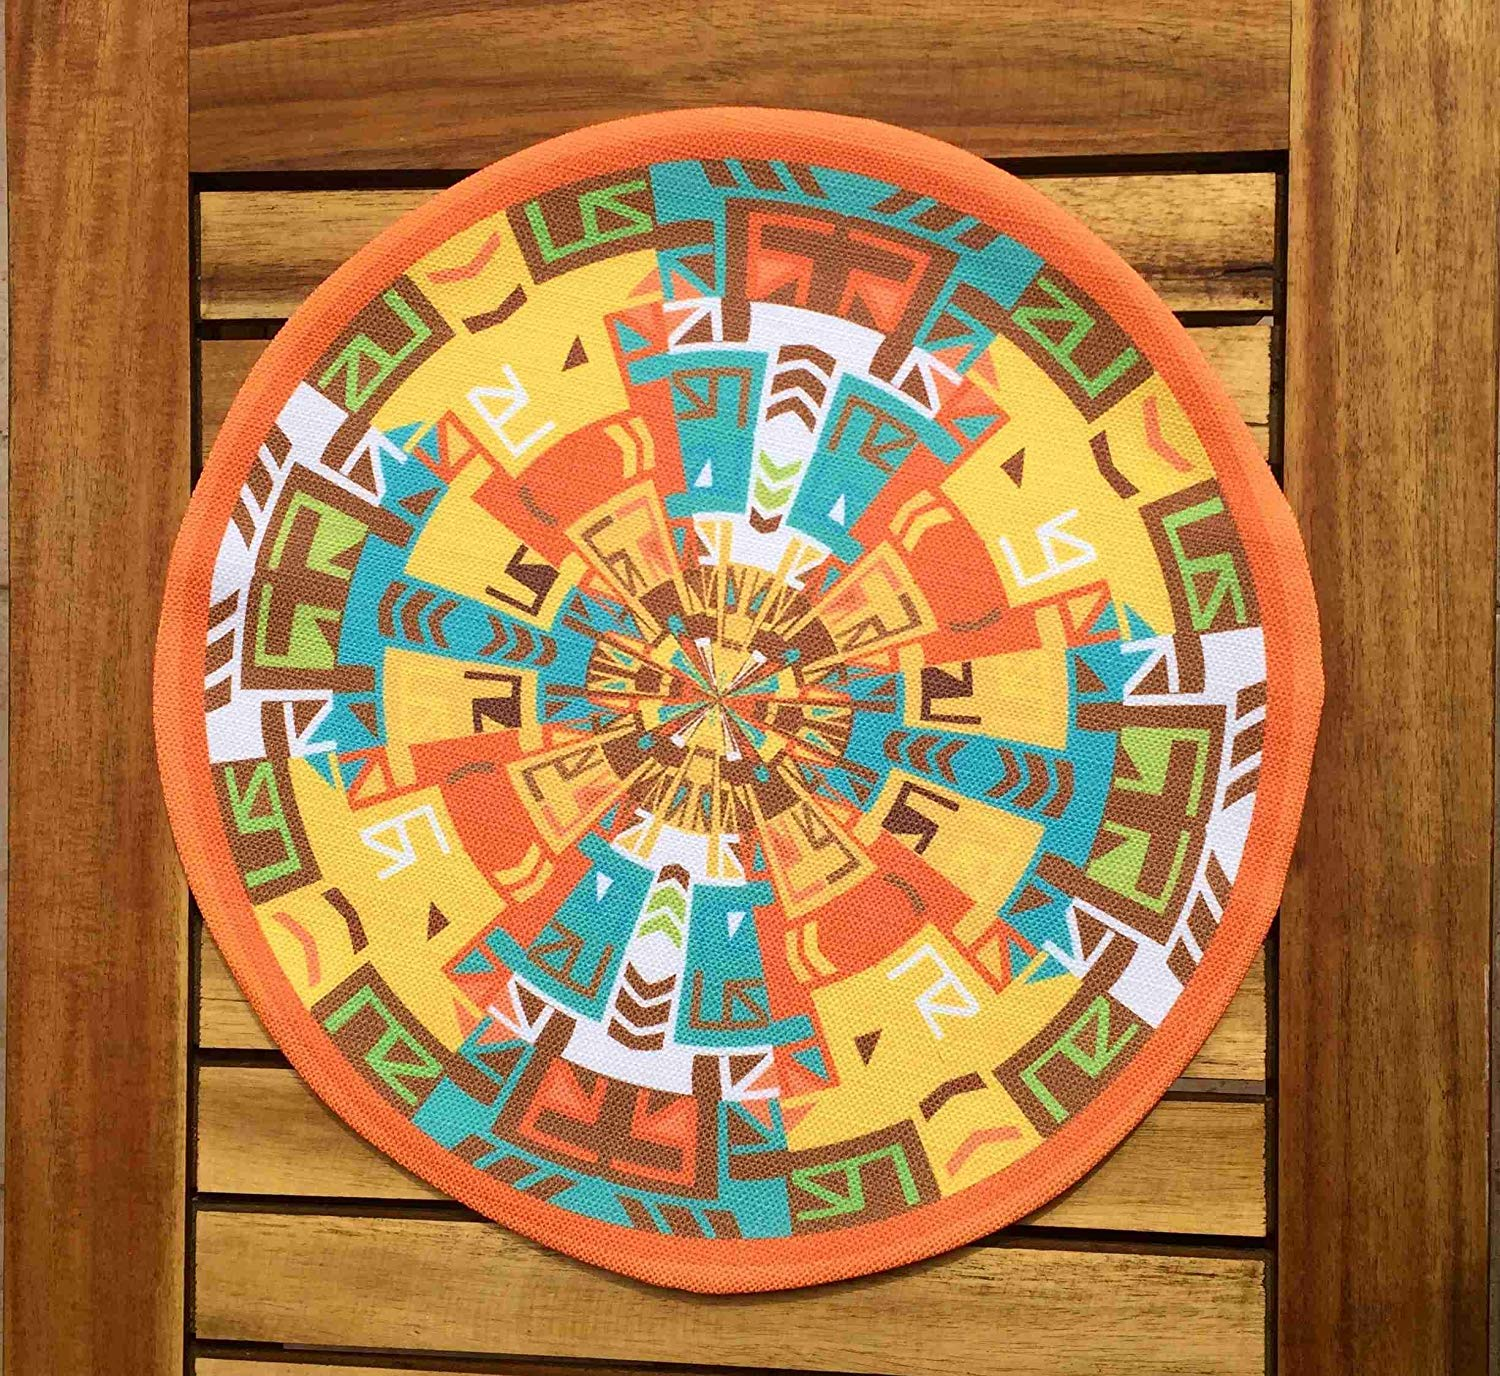 "TekgulDesign Mayan Placemats,%100 Polyester, Handmade, Diameter: 35cm (14""), Crease Resistant and Stain-Proof Fabric, Modern and Colorful Ultra HD Graphics."